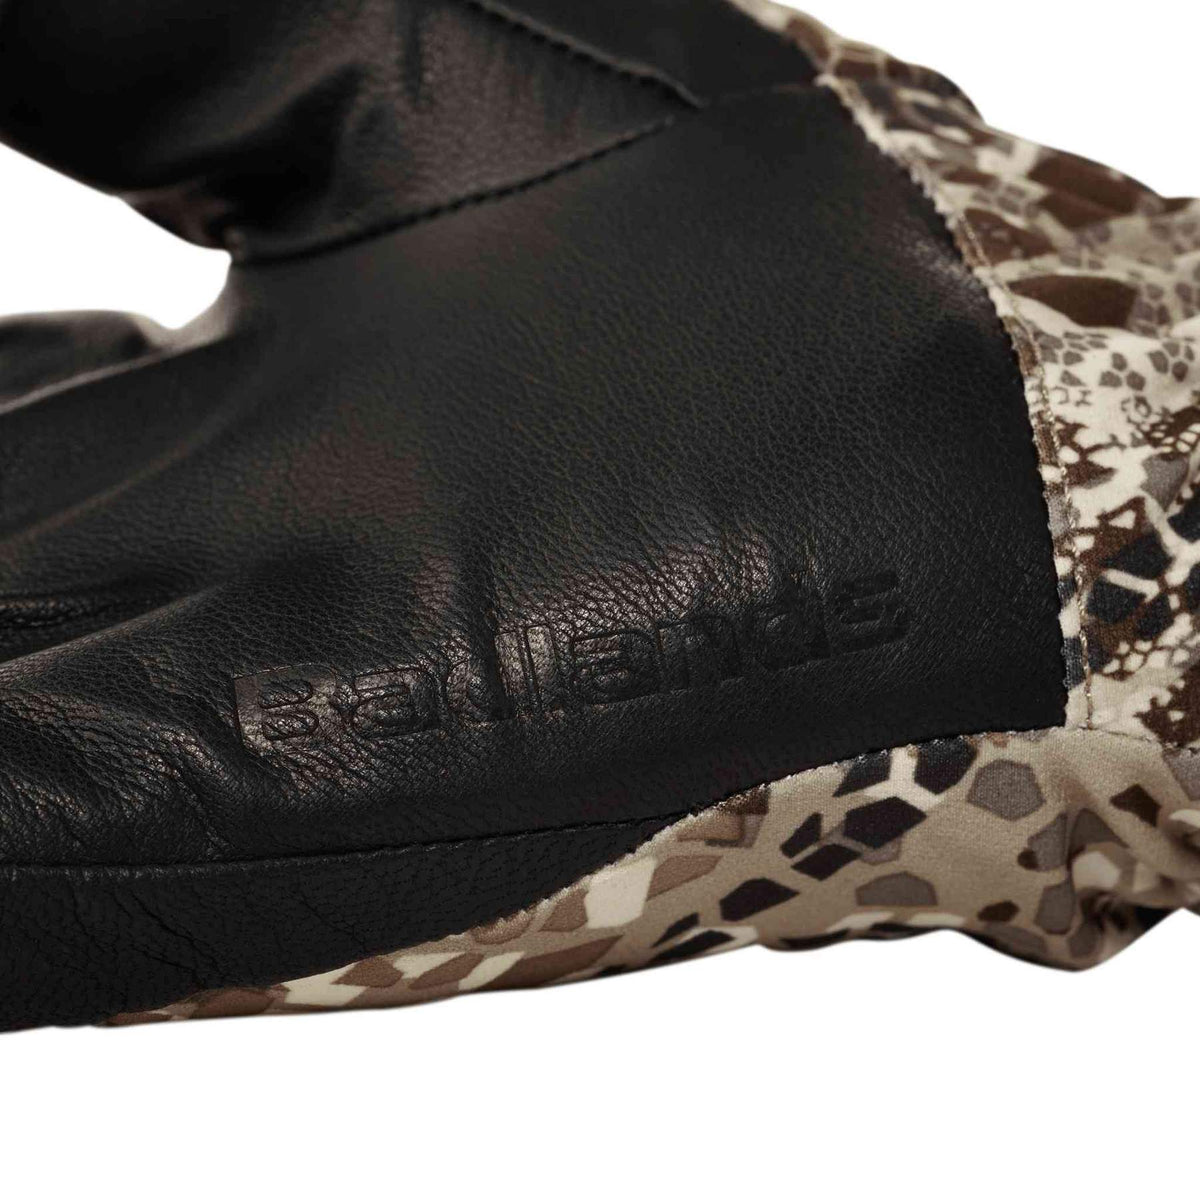 badlands convection glove approach fx leather palm